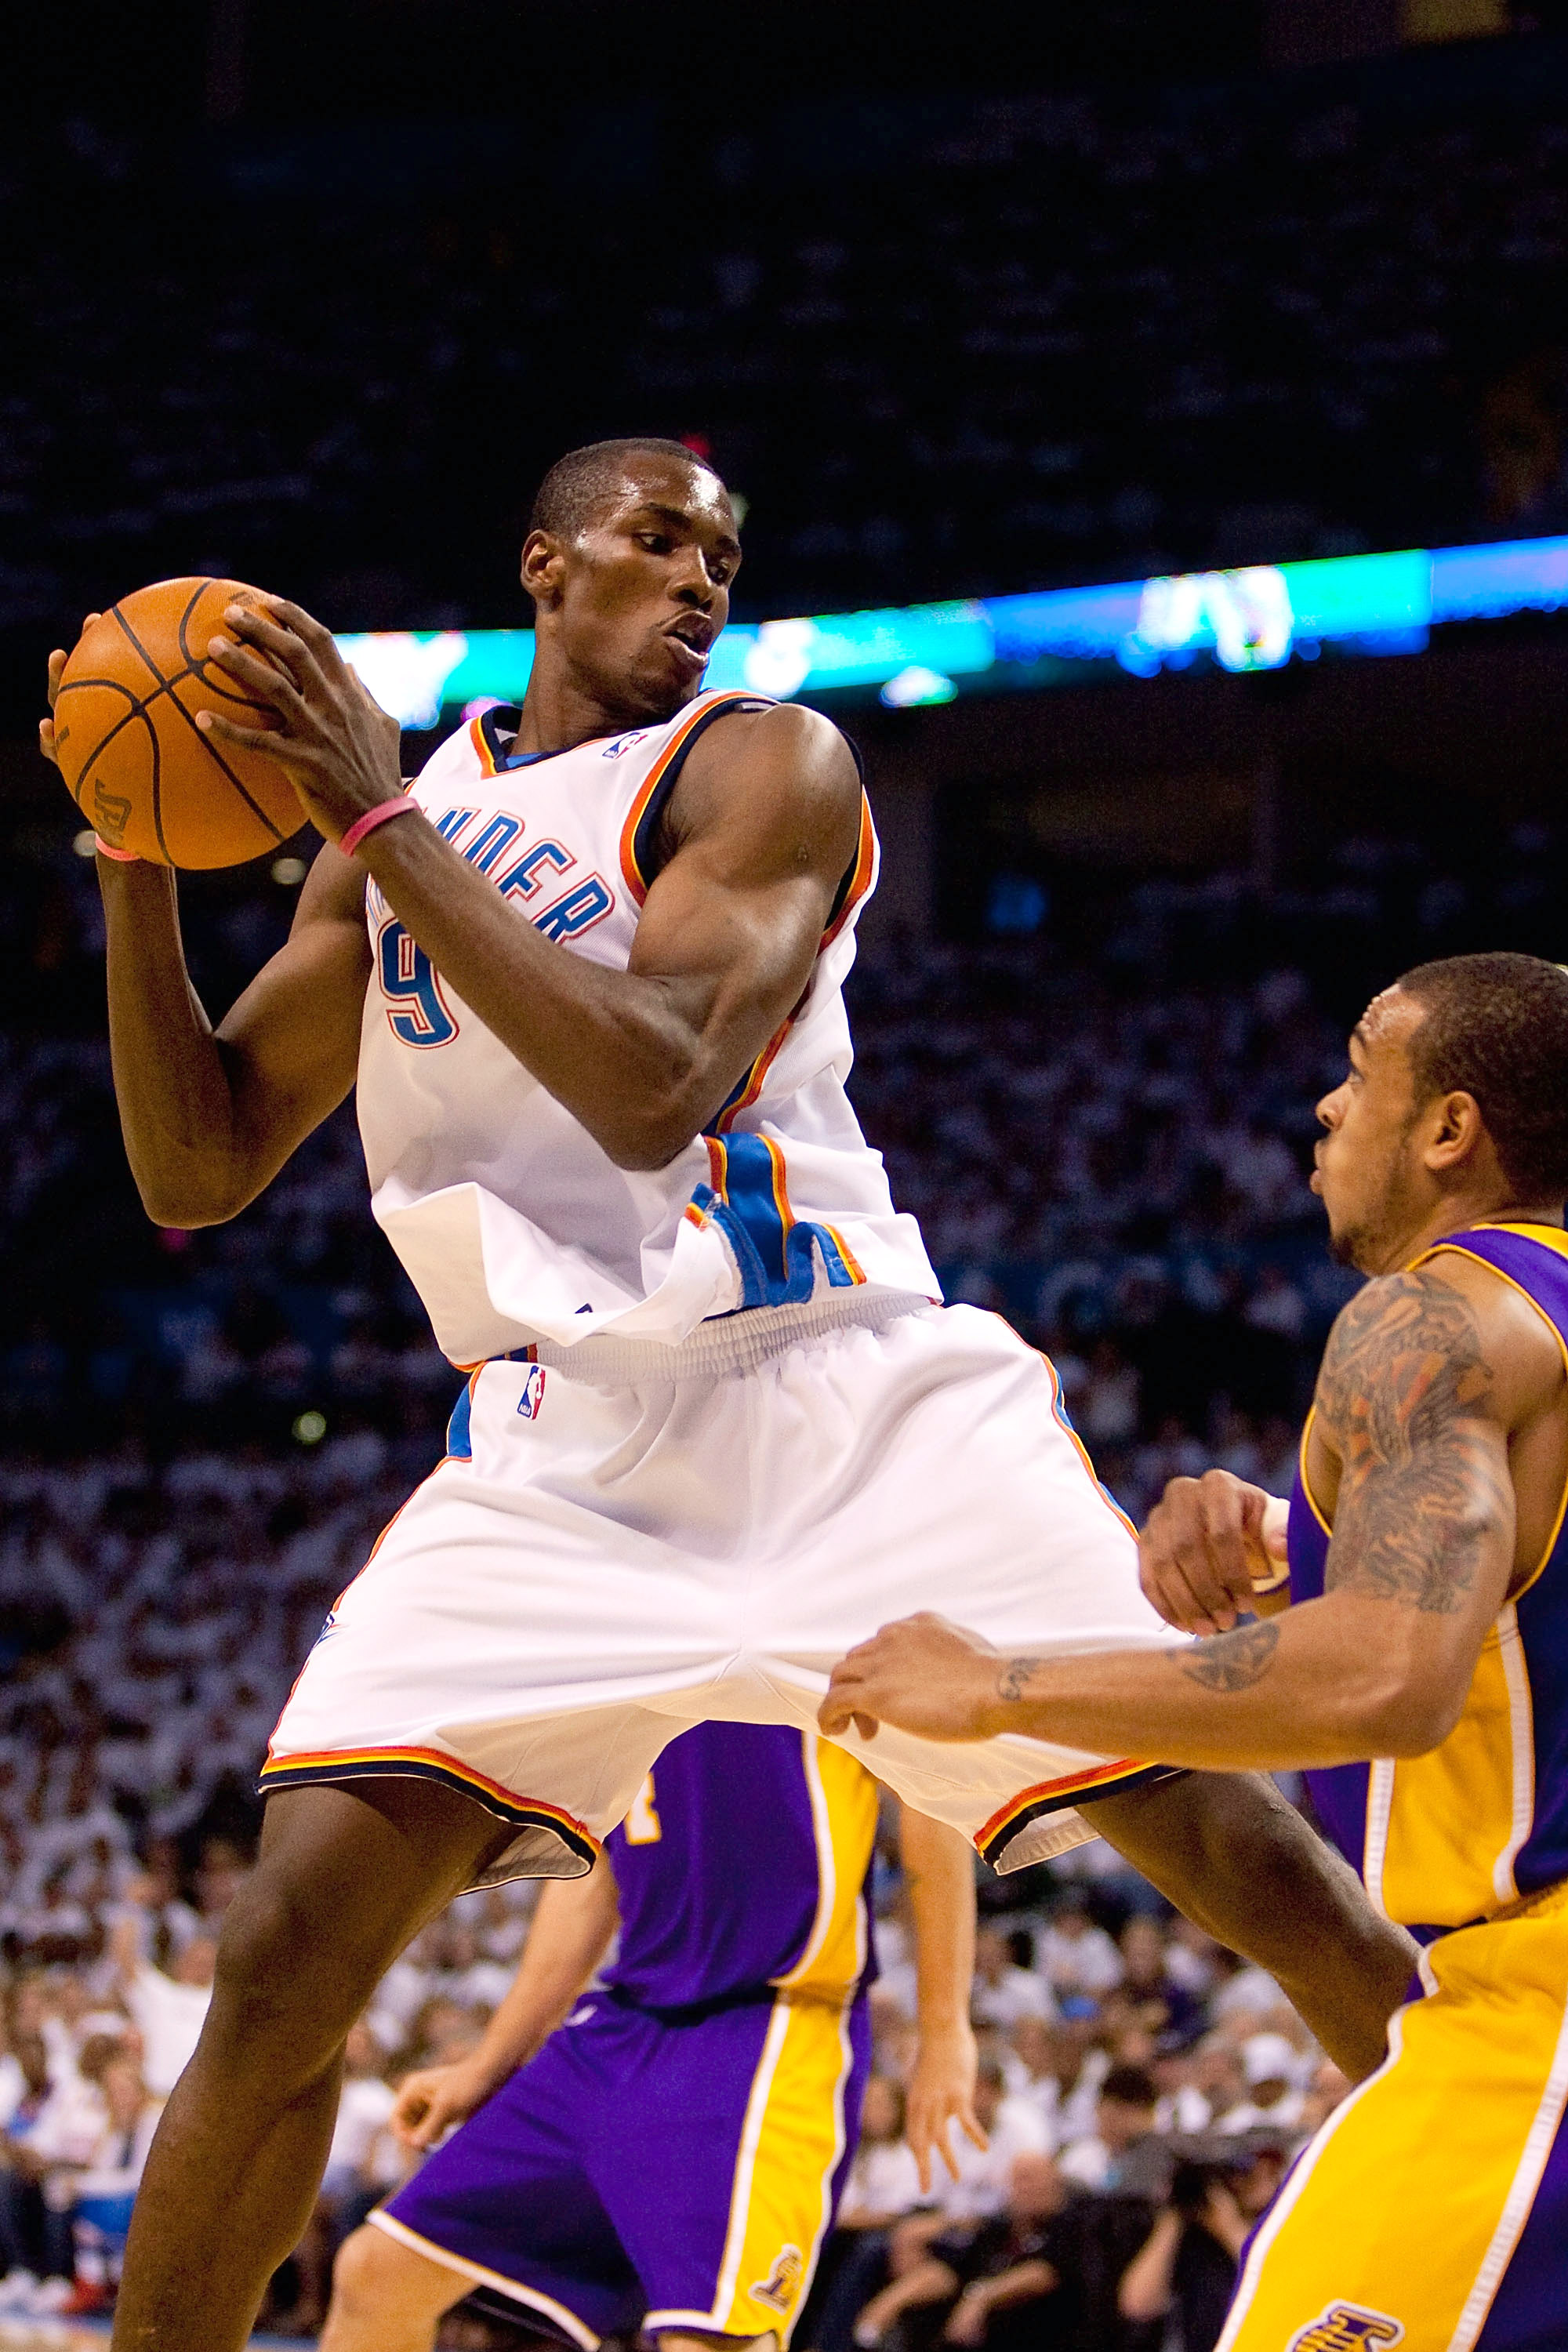 OKLAHOMA CITY - APRIL 24: Serge Ibaka #9 of the Oklahoma City Thunder pulls down a rebound against the Los Angeles Lakers during Game Four of the Western Conference Quarterfinals of the 2010 NBA Playoffs on April 24, 2010 at the Ford Center in Oklahoma Ci